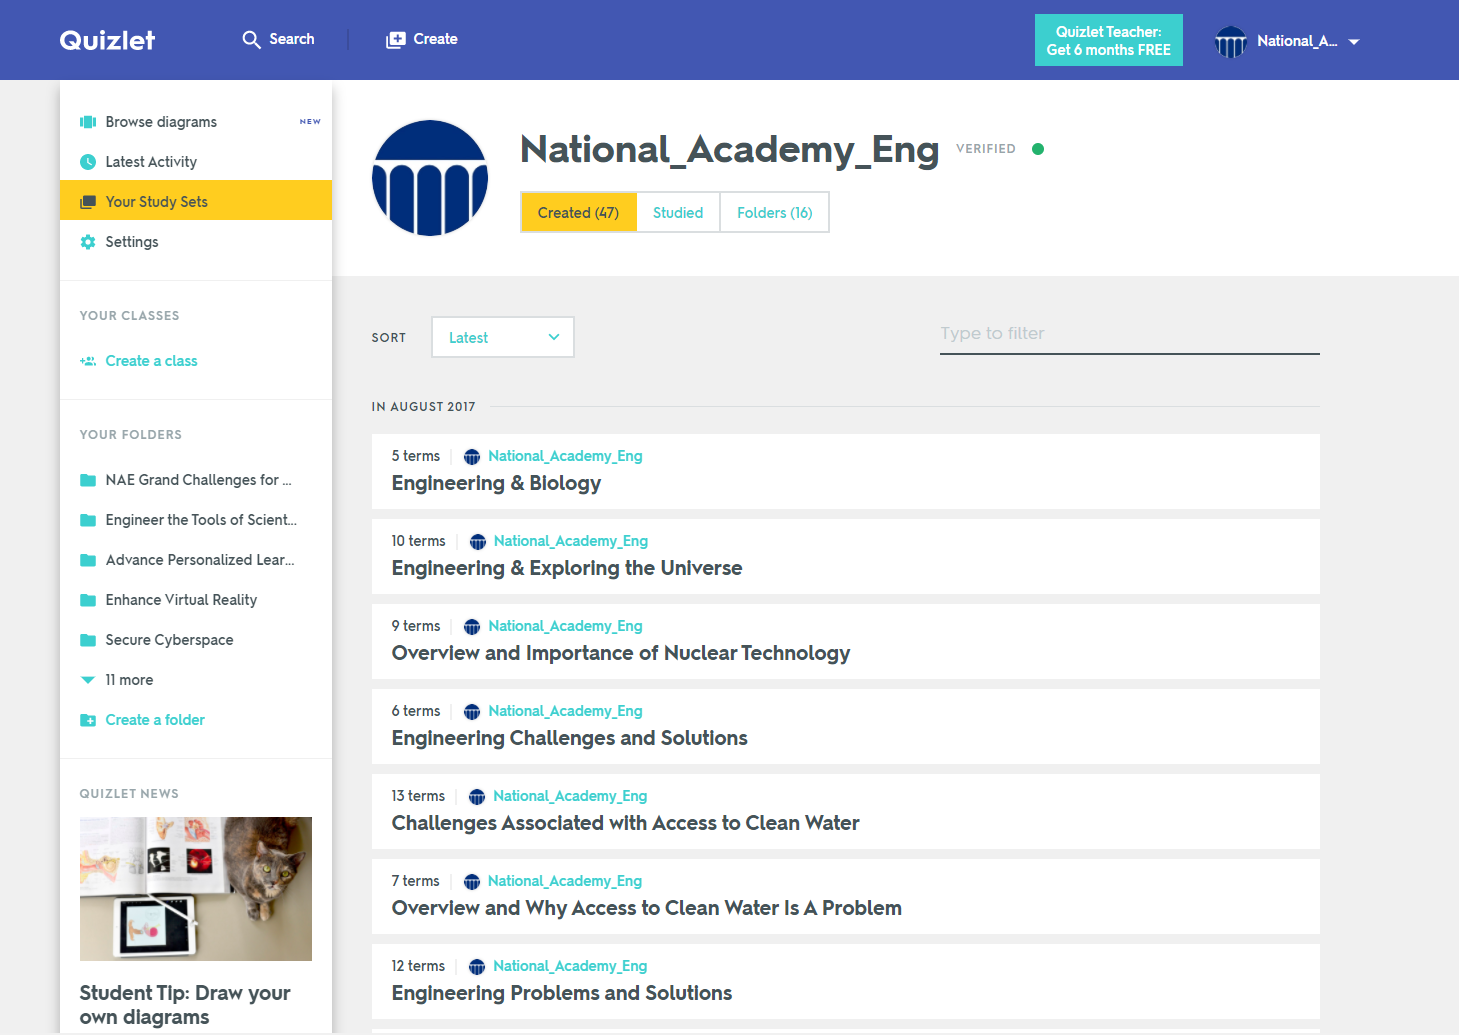 National Academy of Engineering Releases Quizlet Set Based on the 14 Grand Challenges and EngineerGirl